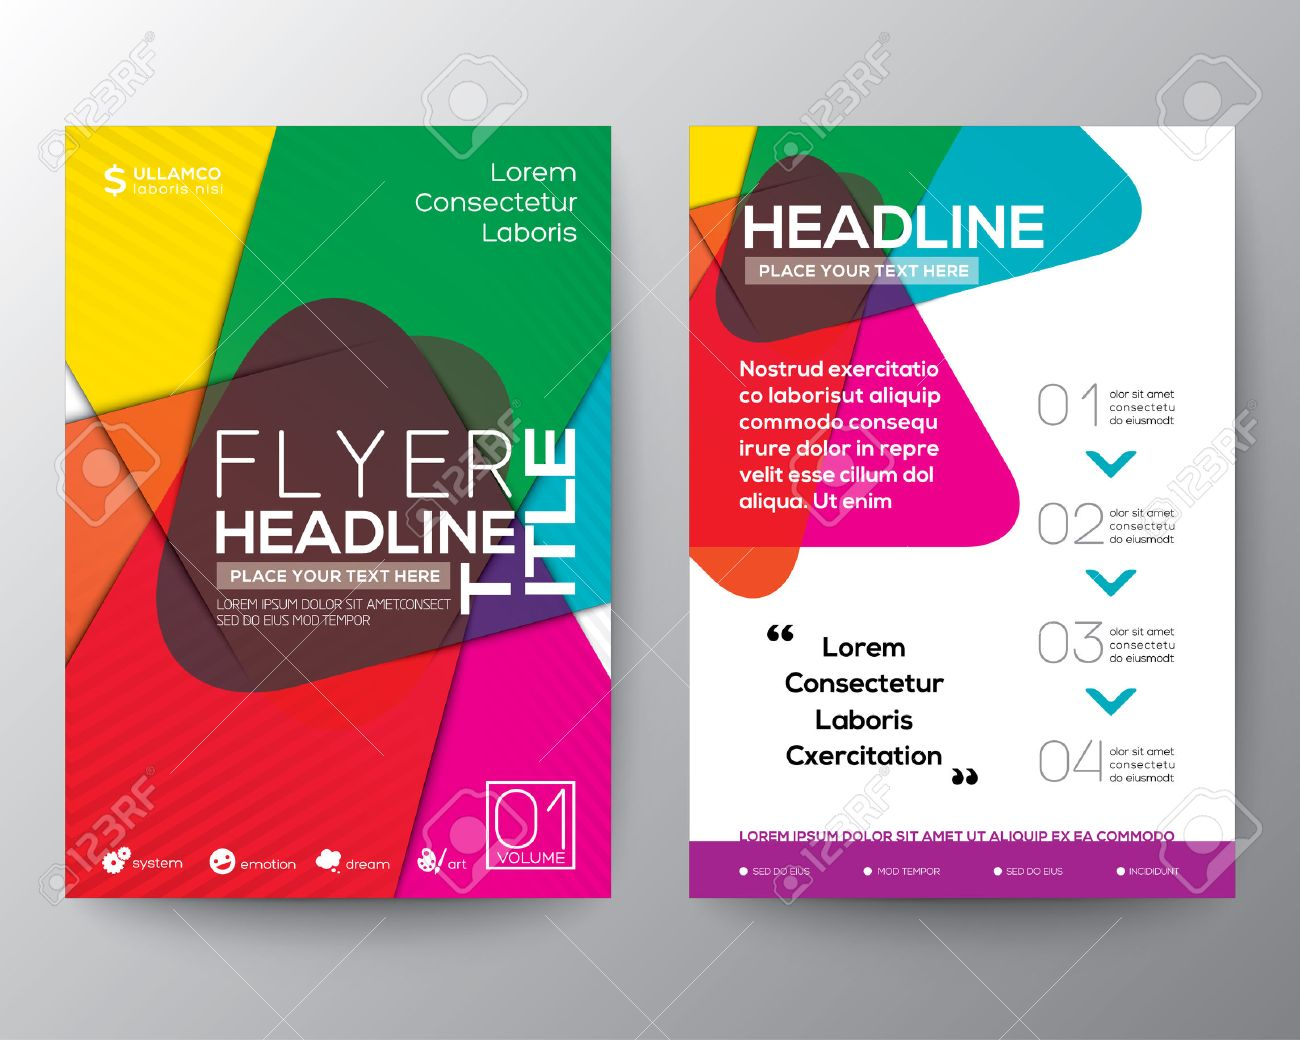 Flyer Design Ideas designs flyer flyer flyer flyer flyer Abstract Colorful Brochure Flyer Design Layout Vector Template Abstract Colorful Brochure Flyer Design Layout Vector Template